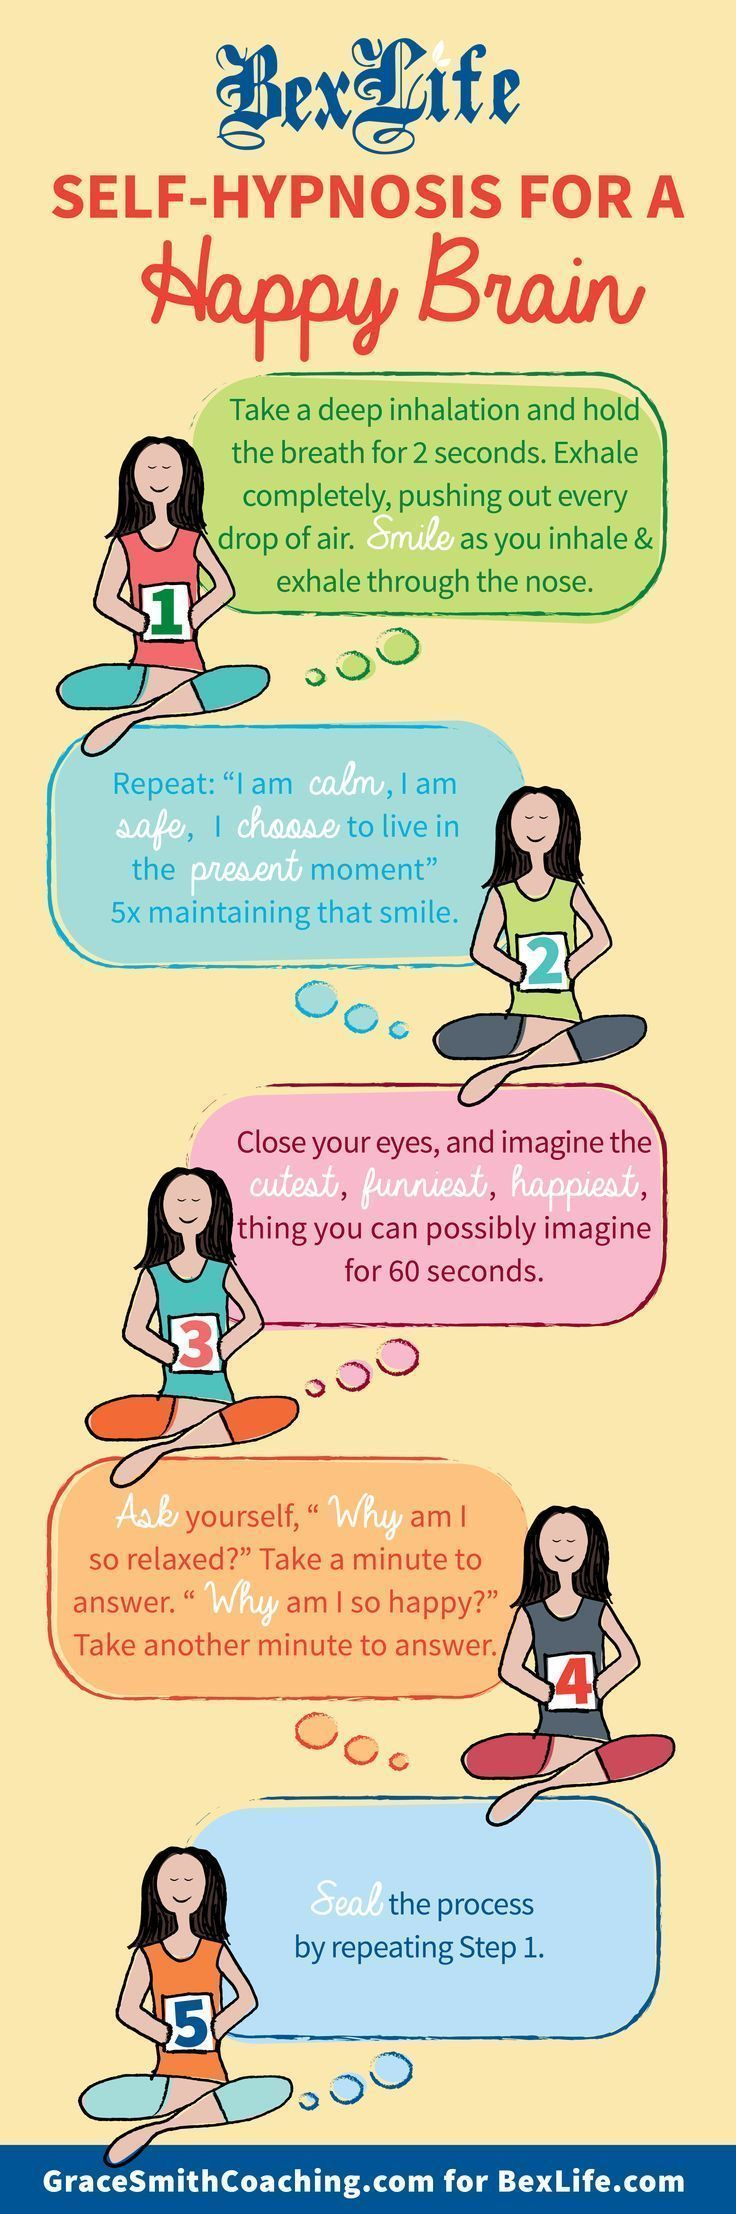 Self-hypnosis can be a means of mindfulness practice. This simple mindful breathing exercise can reduce stress & anxiety.